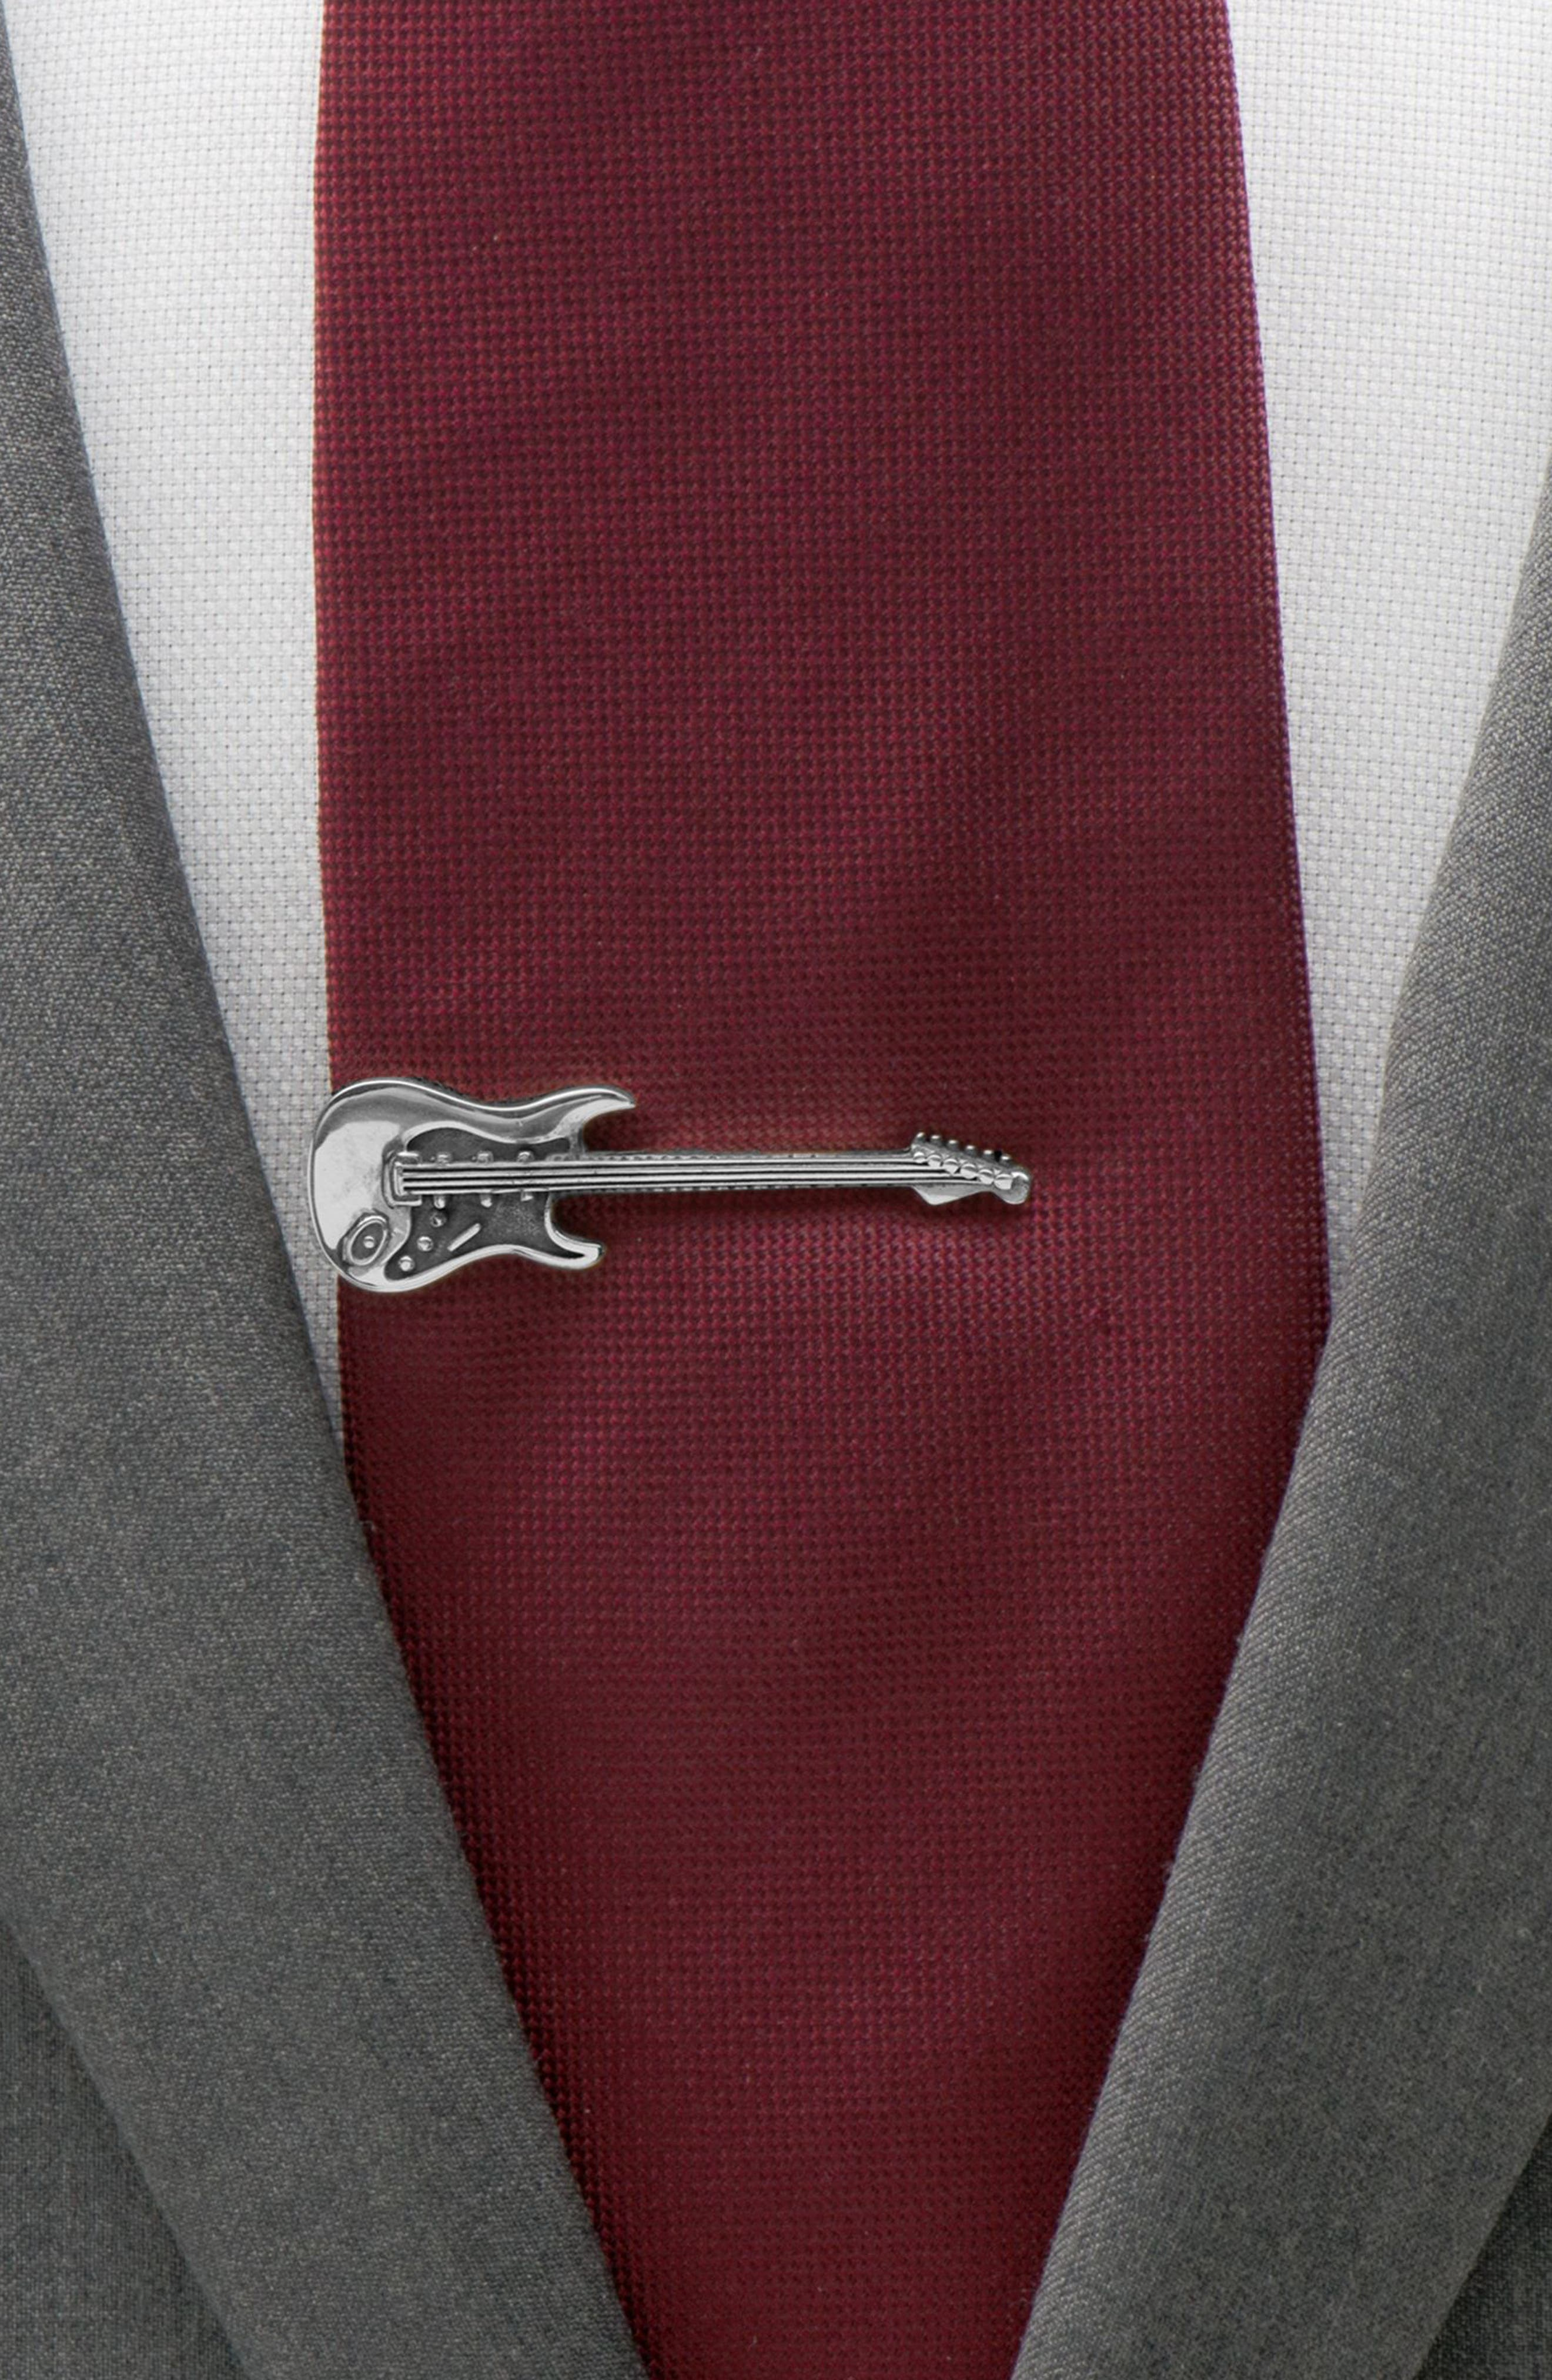 OX AND BULL TRADING CO., Guitar Tie Clip, Alternate thumbnail 3, color, 040